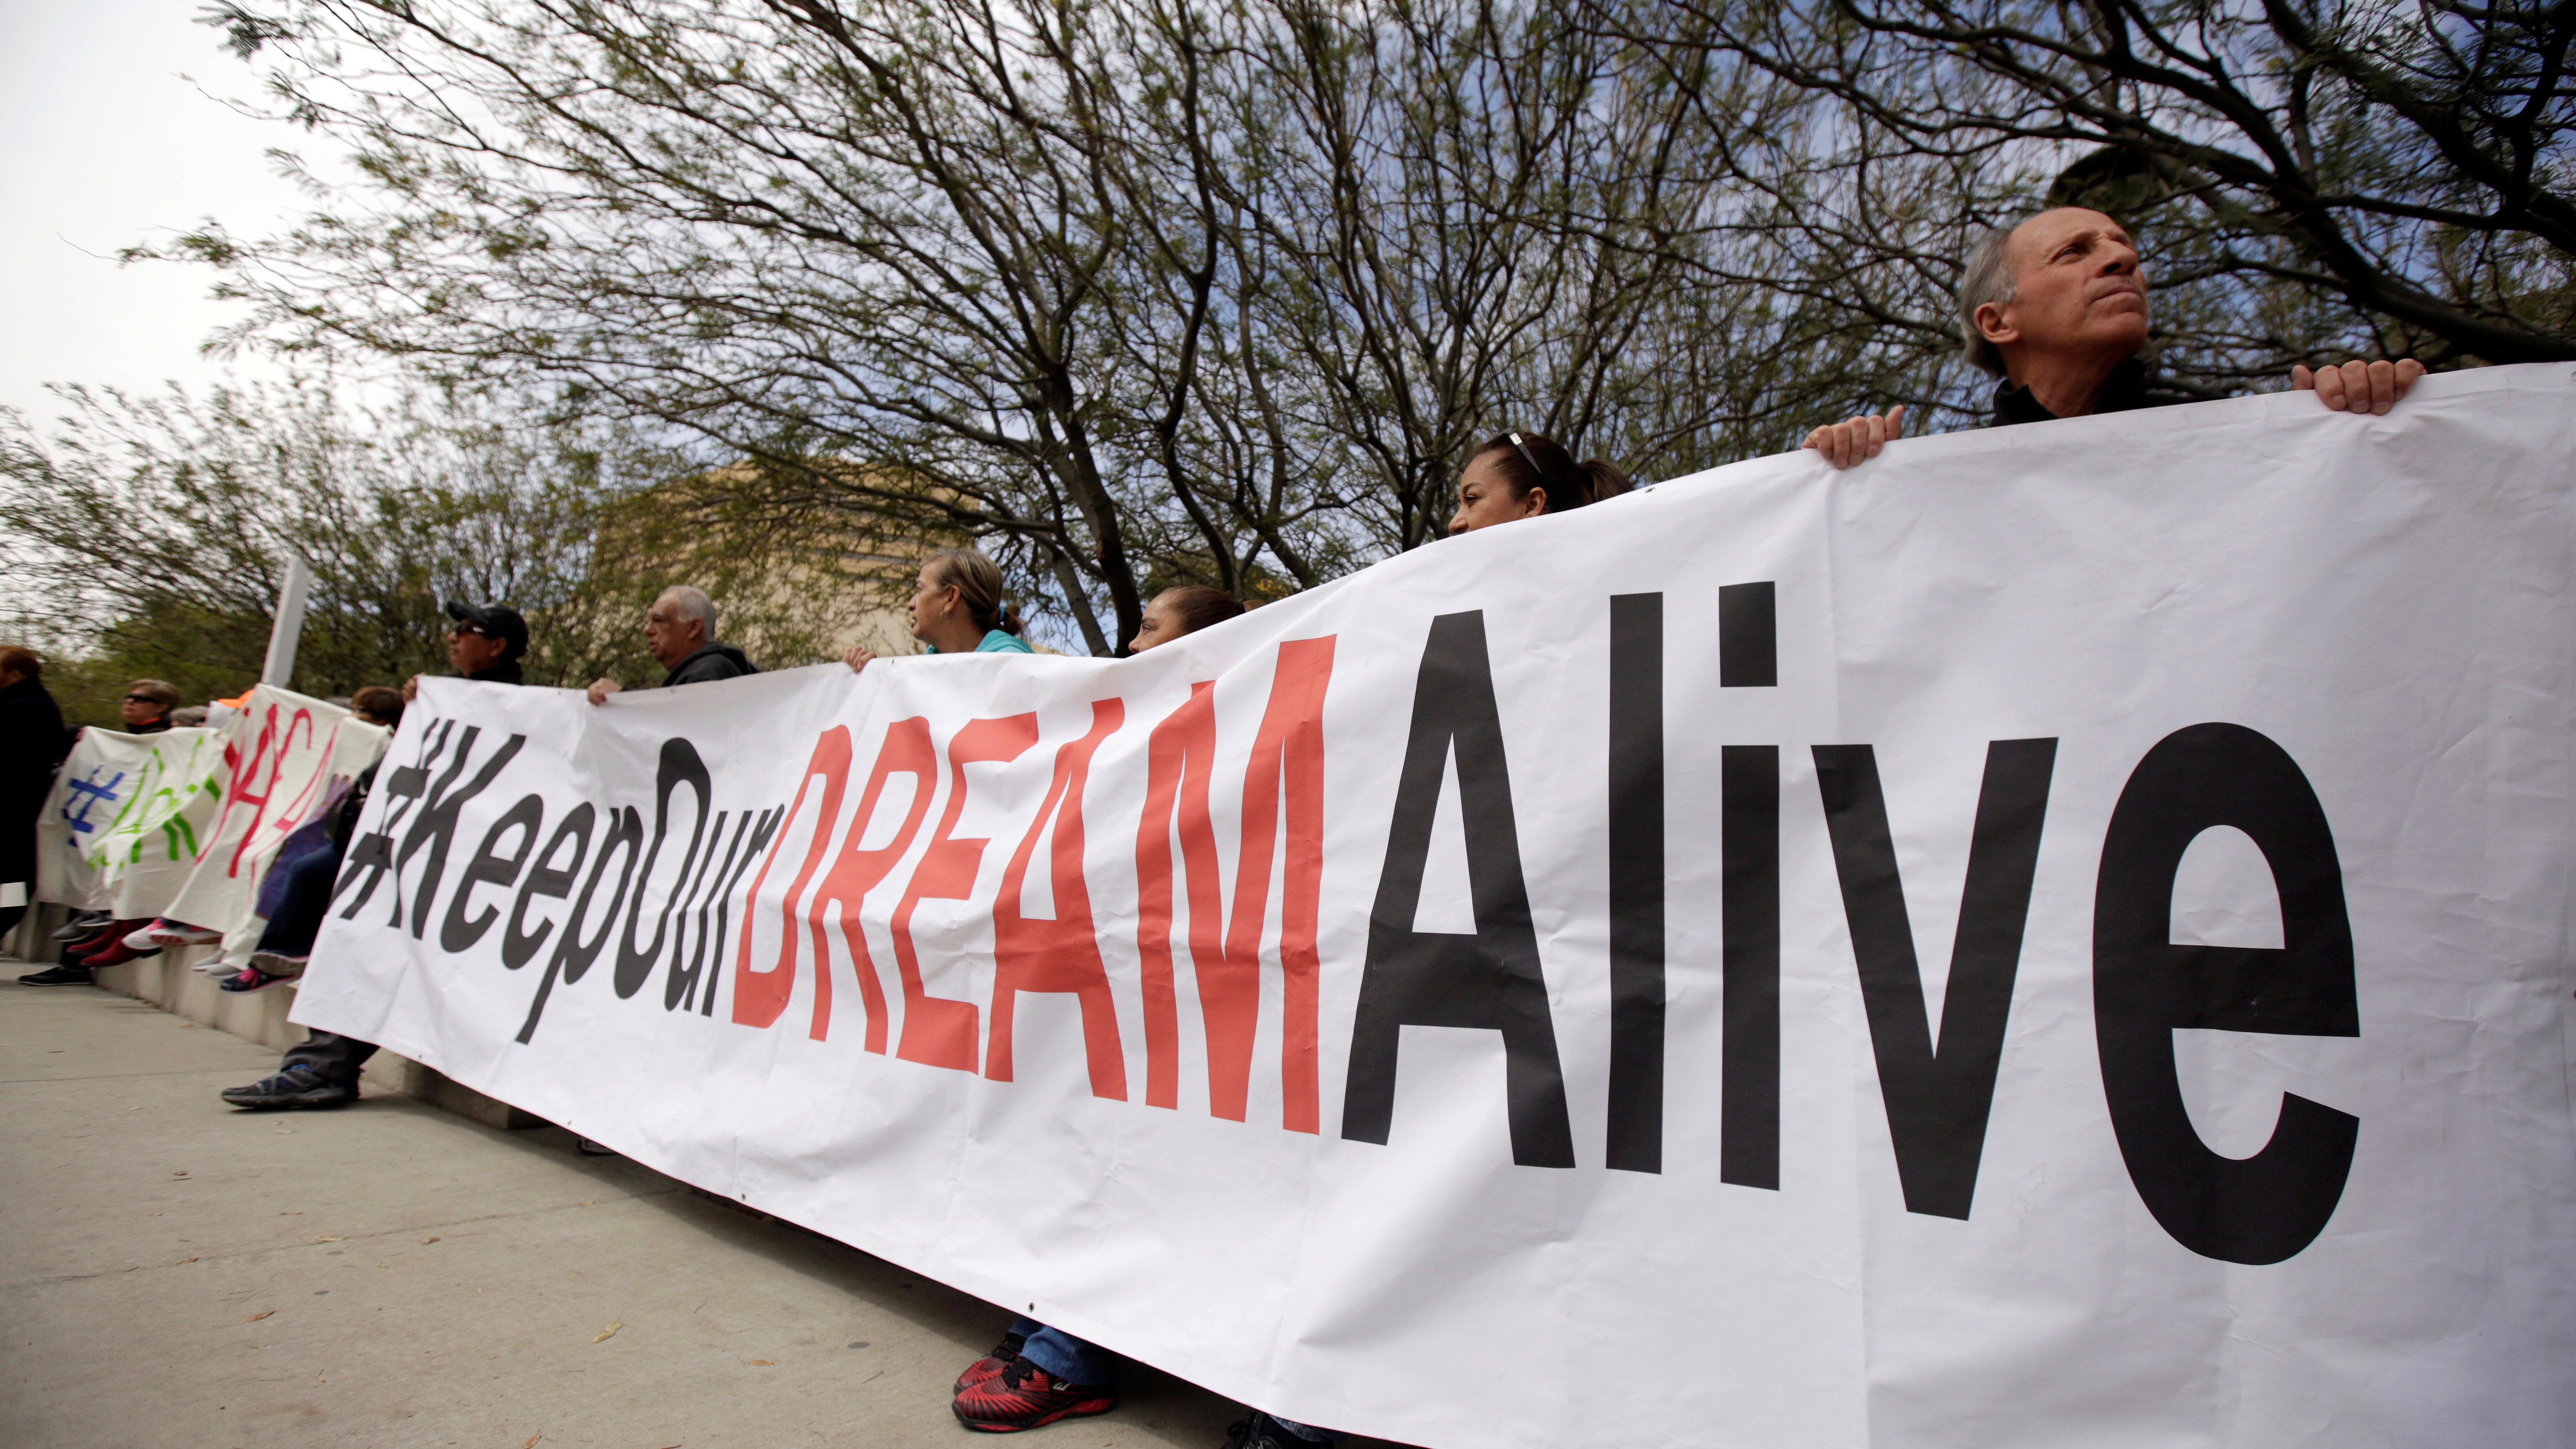 Members of the Border Network for Human Rights and Borders Dreamers and Youth Alliance (BDYA) hold a banner during protest outside a U.S. Federal Courthouse to demand that Congress pass a Clean Dream Act in El Paso, Texas, U.S. March 5, 2018.